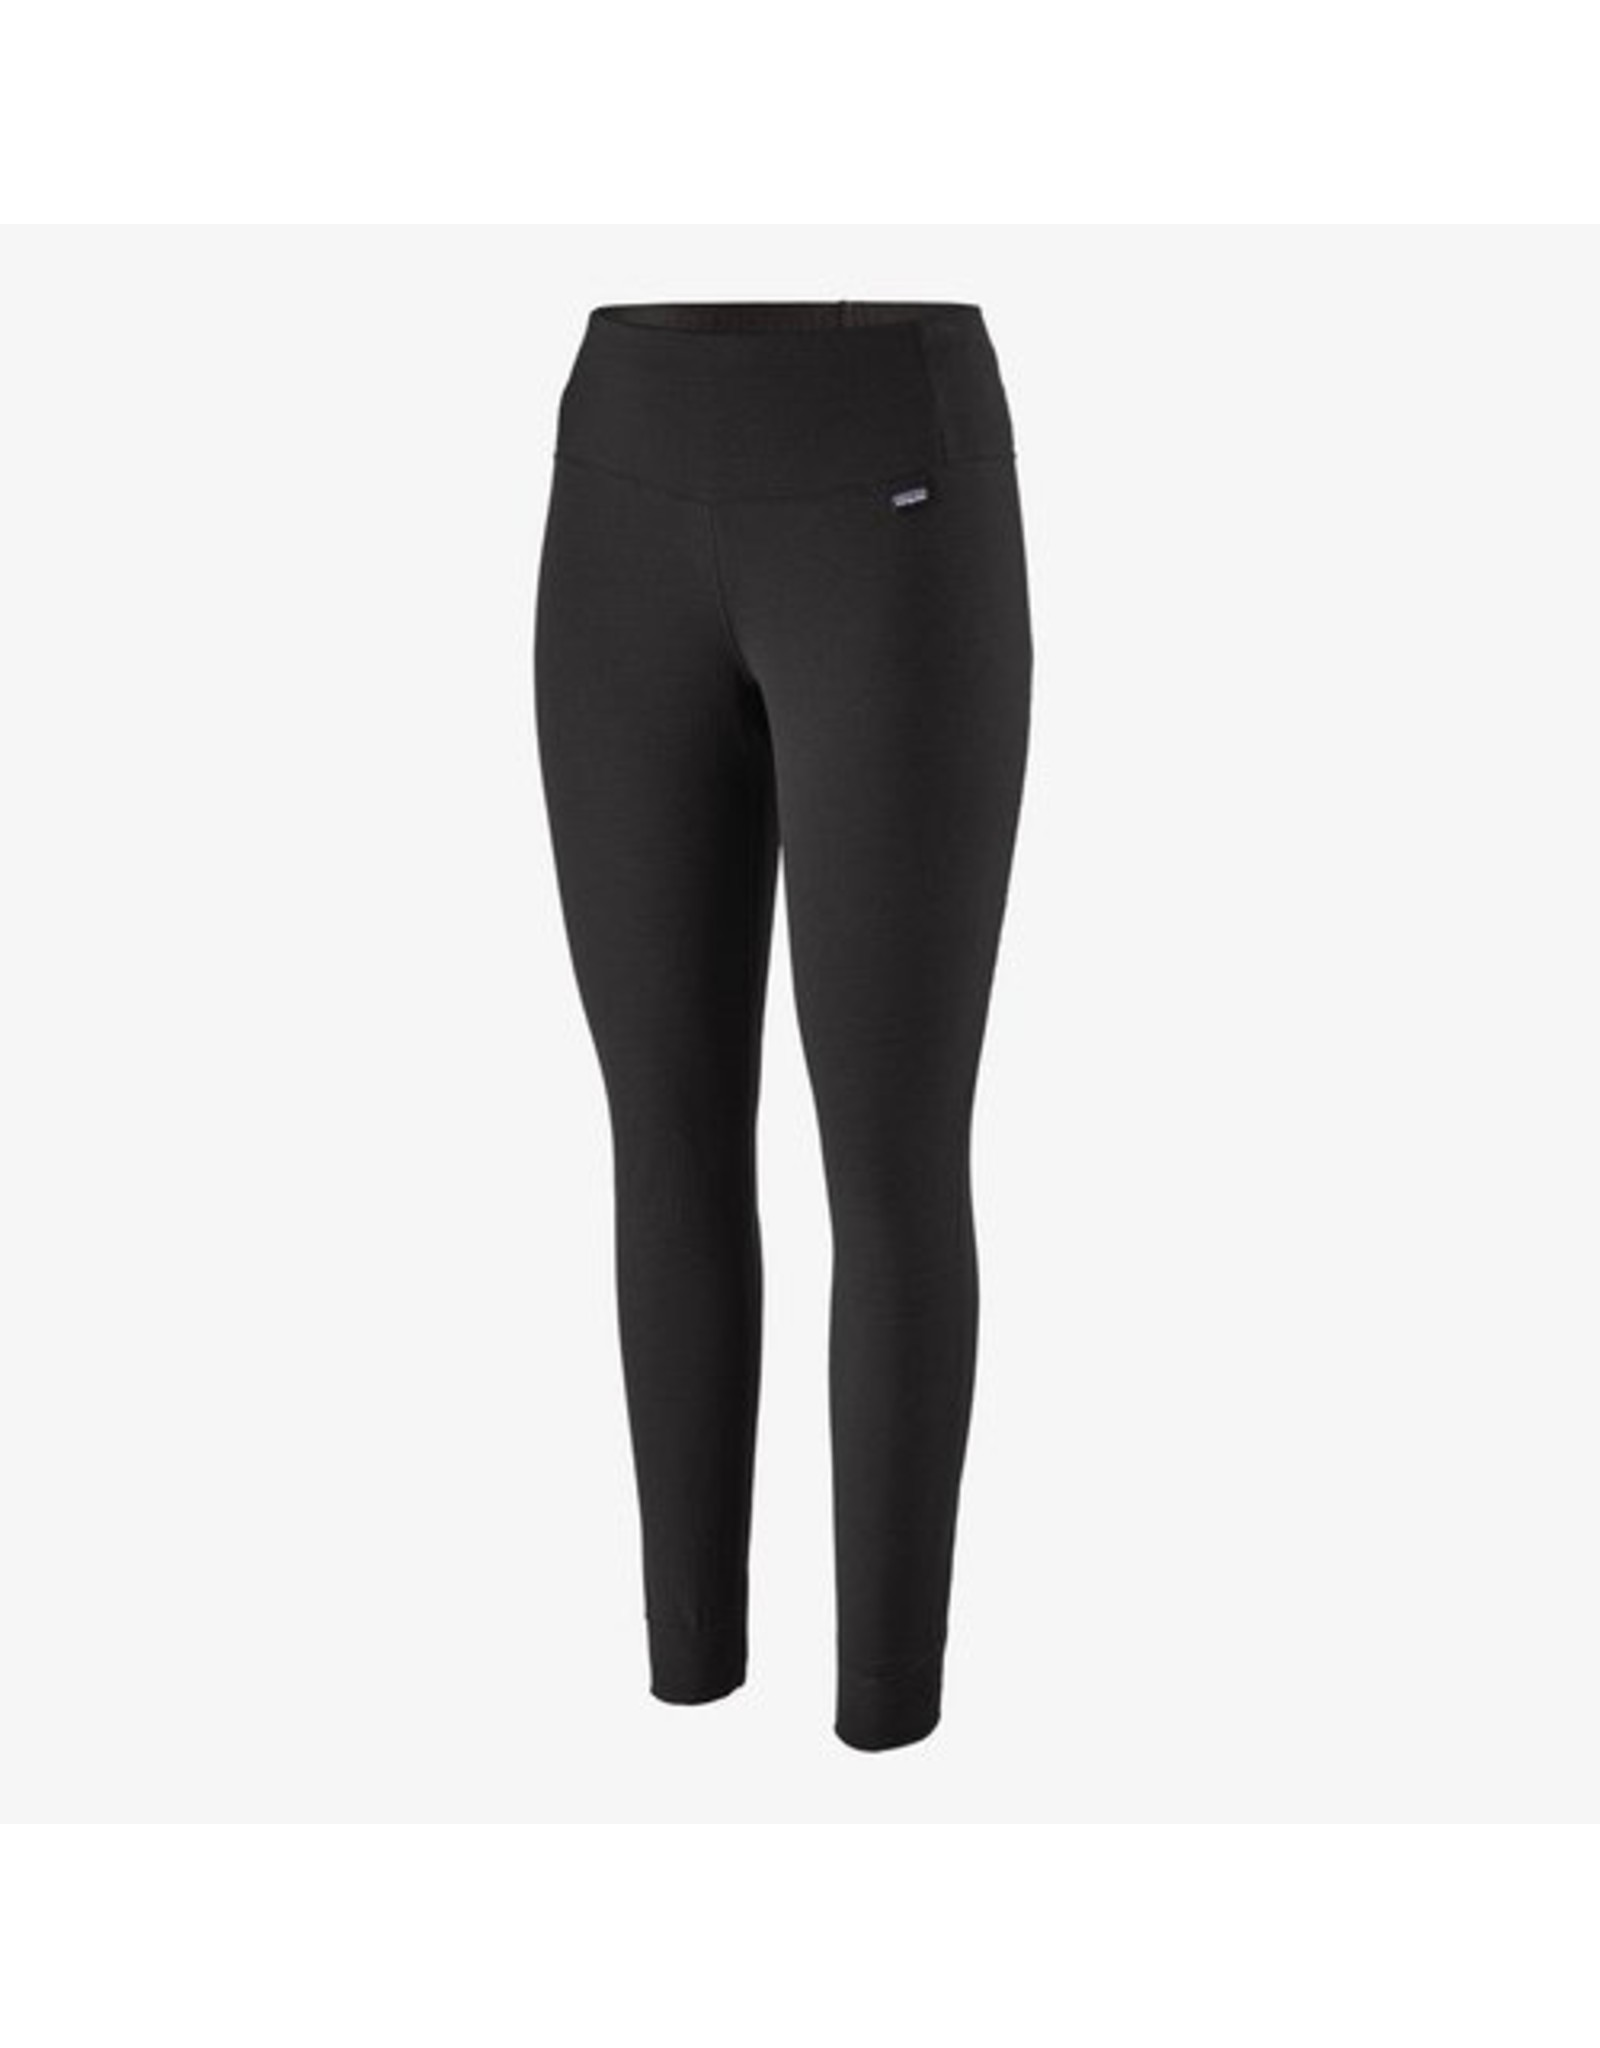 Patagonia Patagonia - W's Capilene Thermal Weight Bottoms